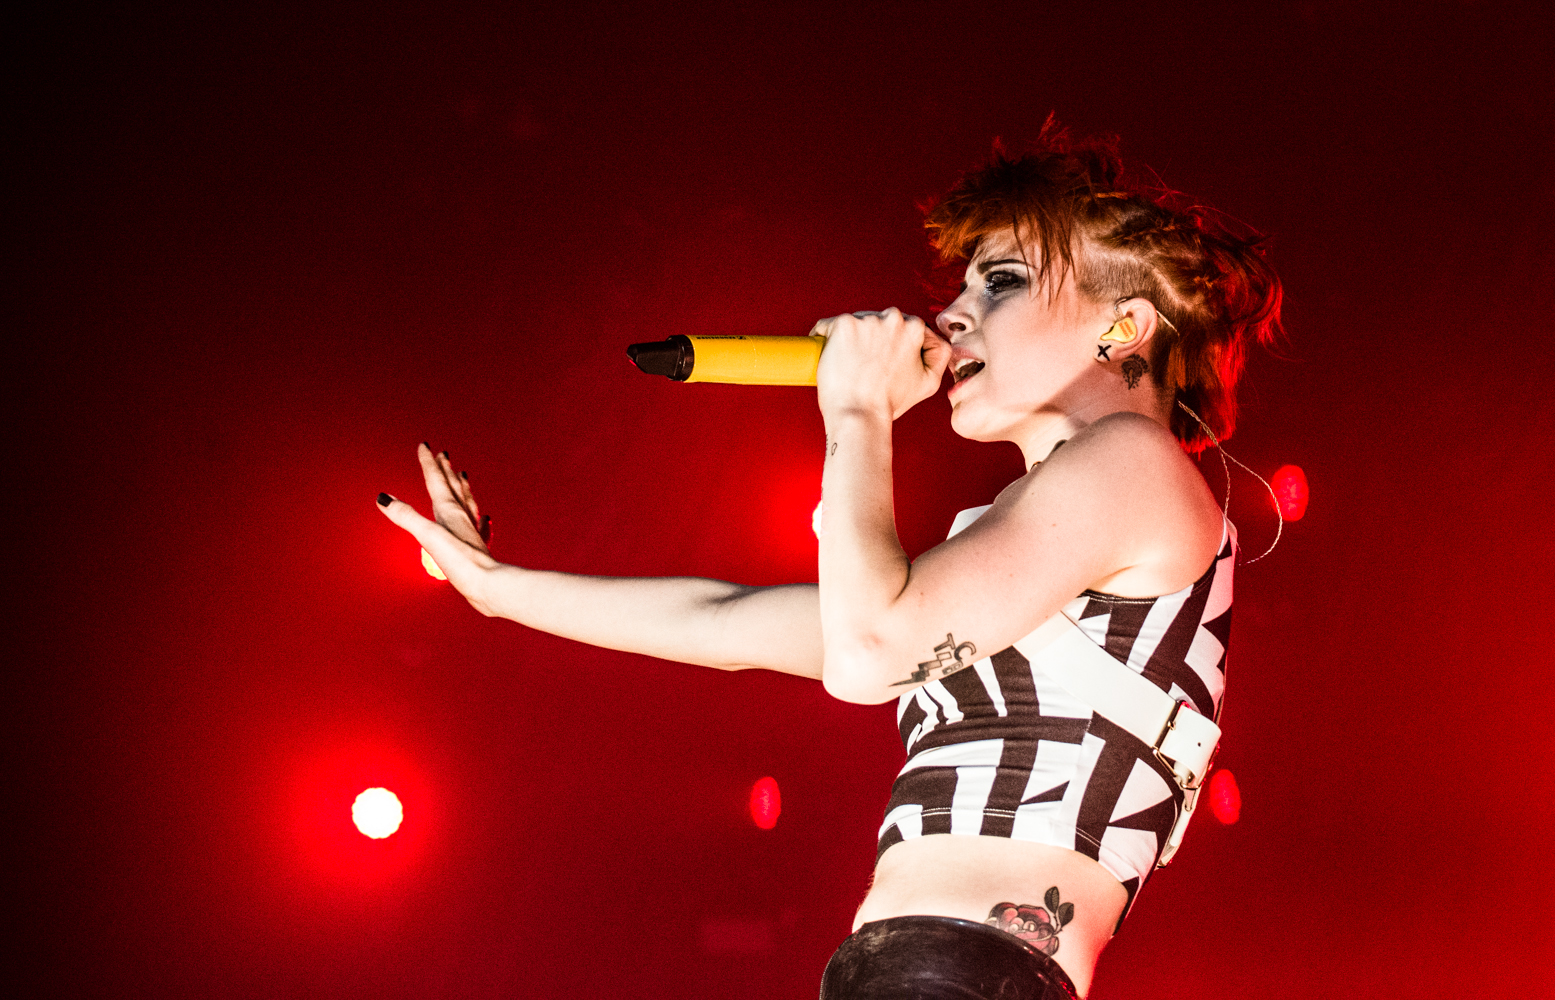 Hayley Williams cantando no palco segurando microfone